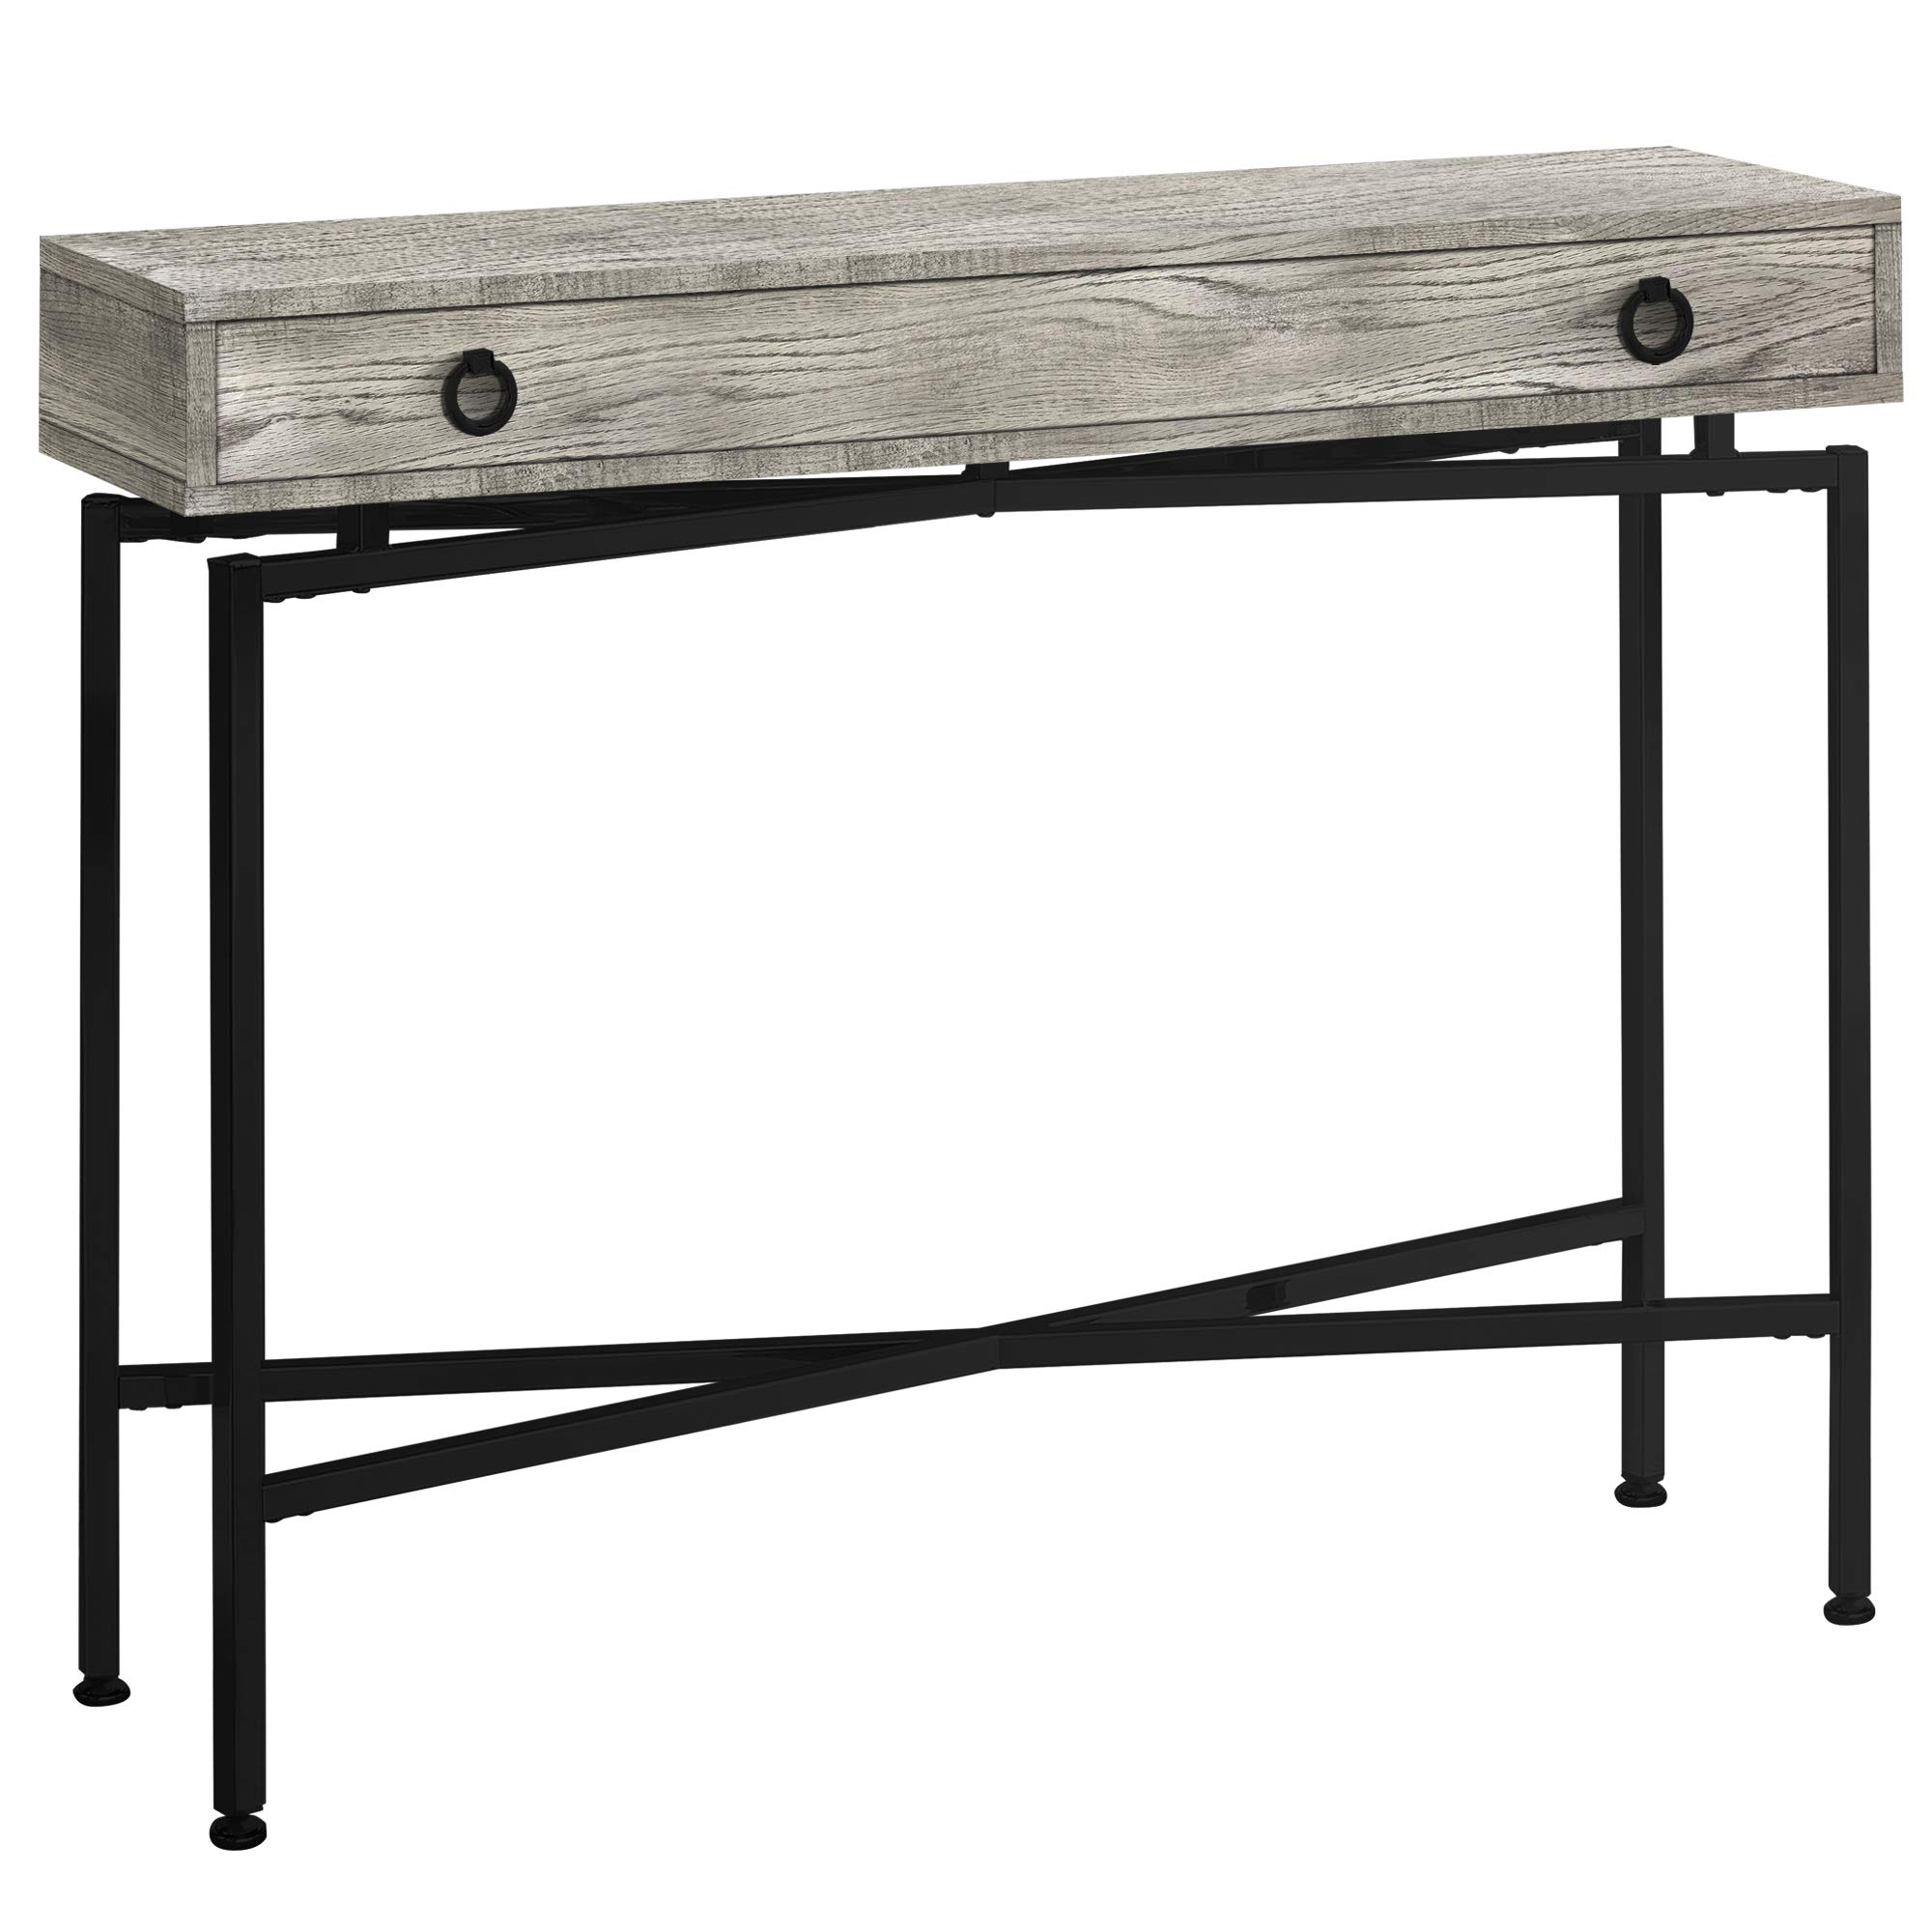 Monarch Specialties I I 3454 Console Sofa Accent Table, 42'' L, Grey Reclaimed Wood-Look/Black Base by Monarch Specialties